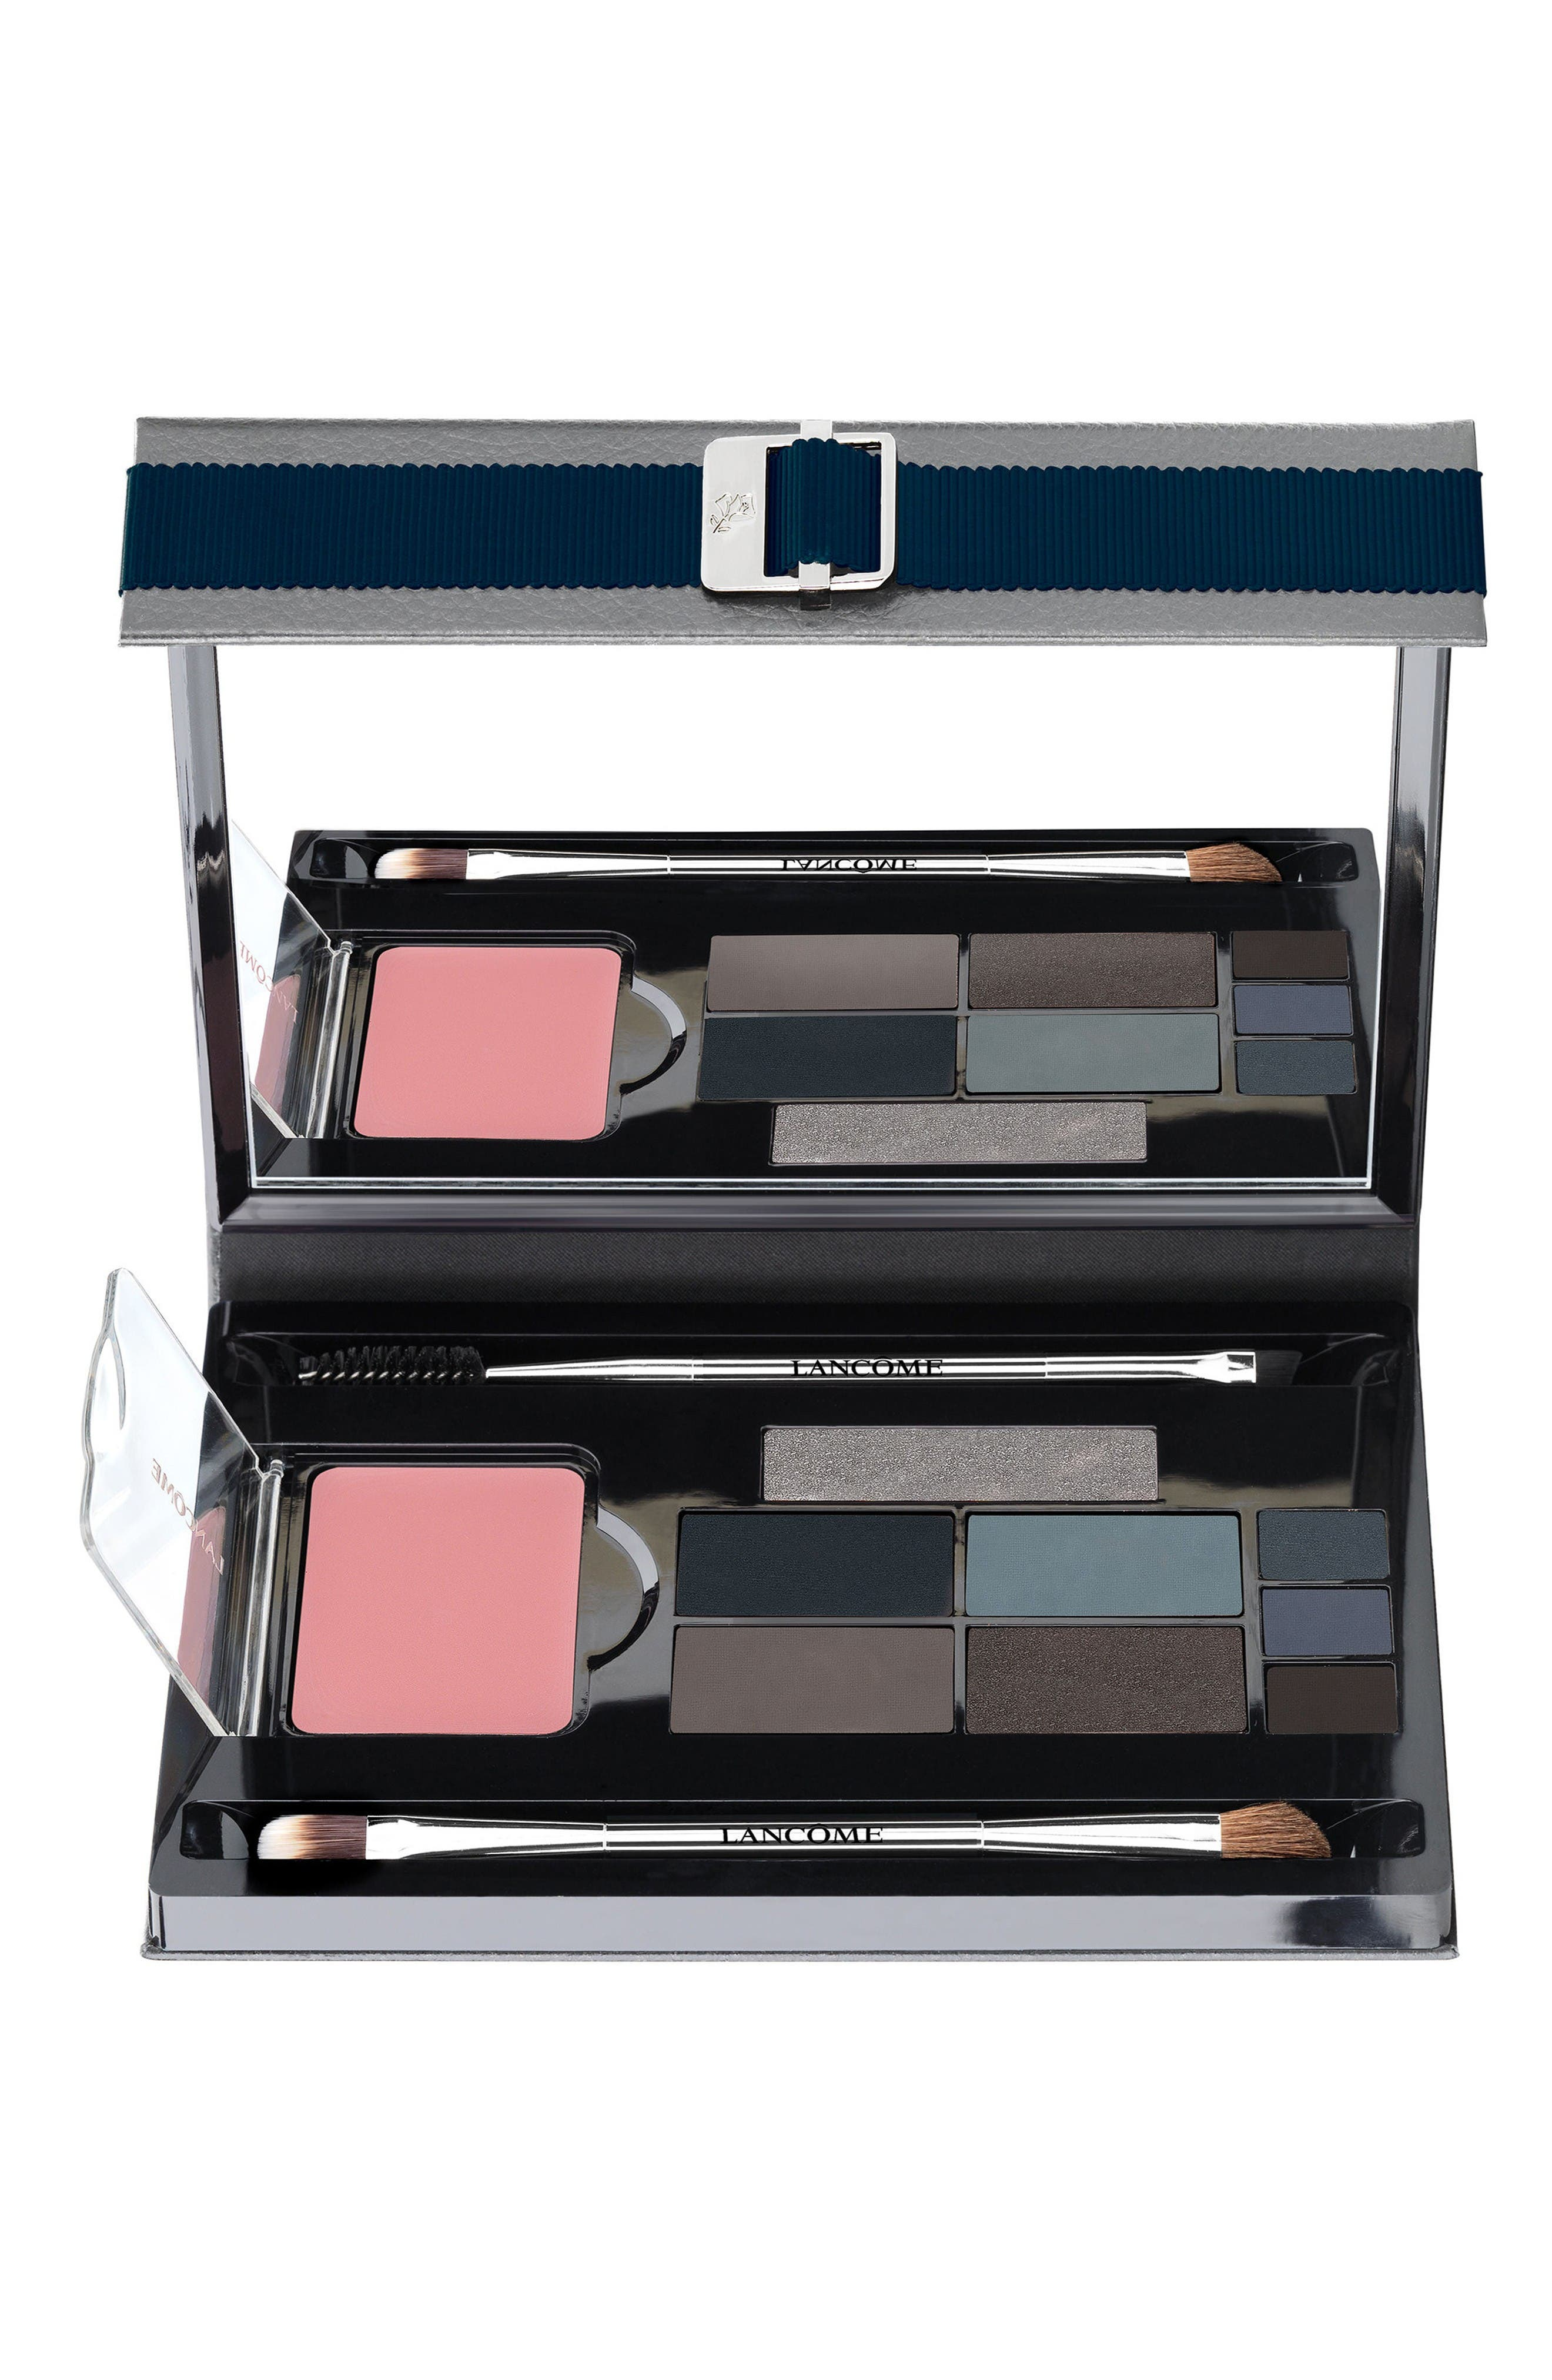 Eyeshadow Lancôme Makeup, Skincare, Fragrance, Gift with Purchase ...